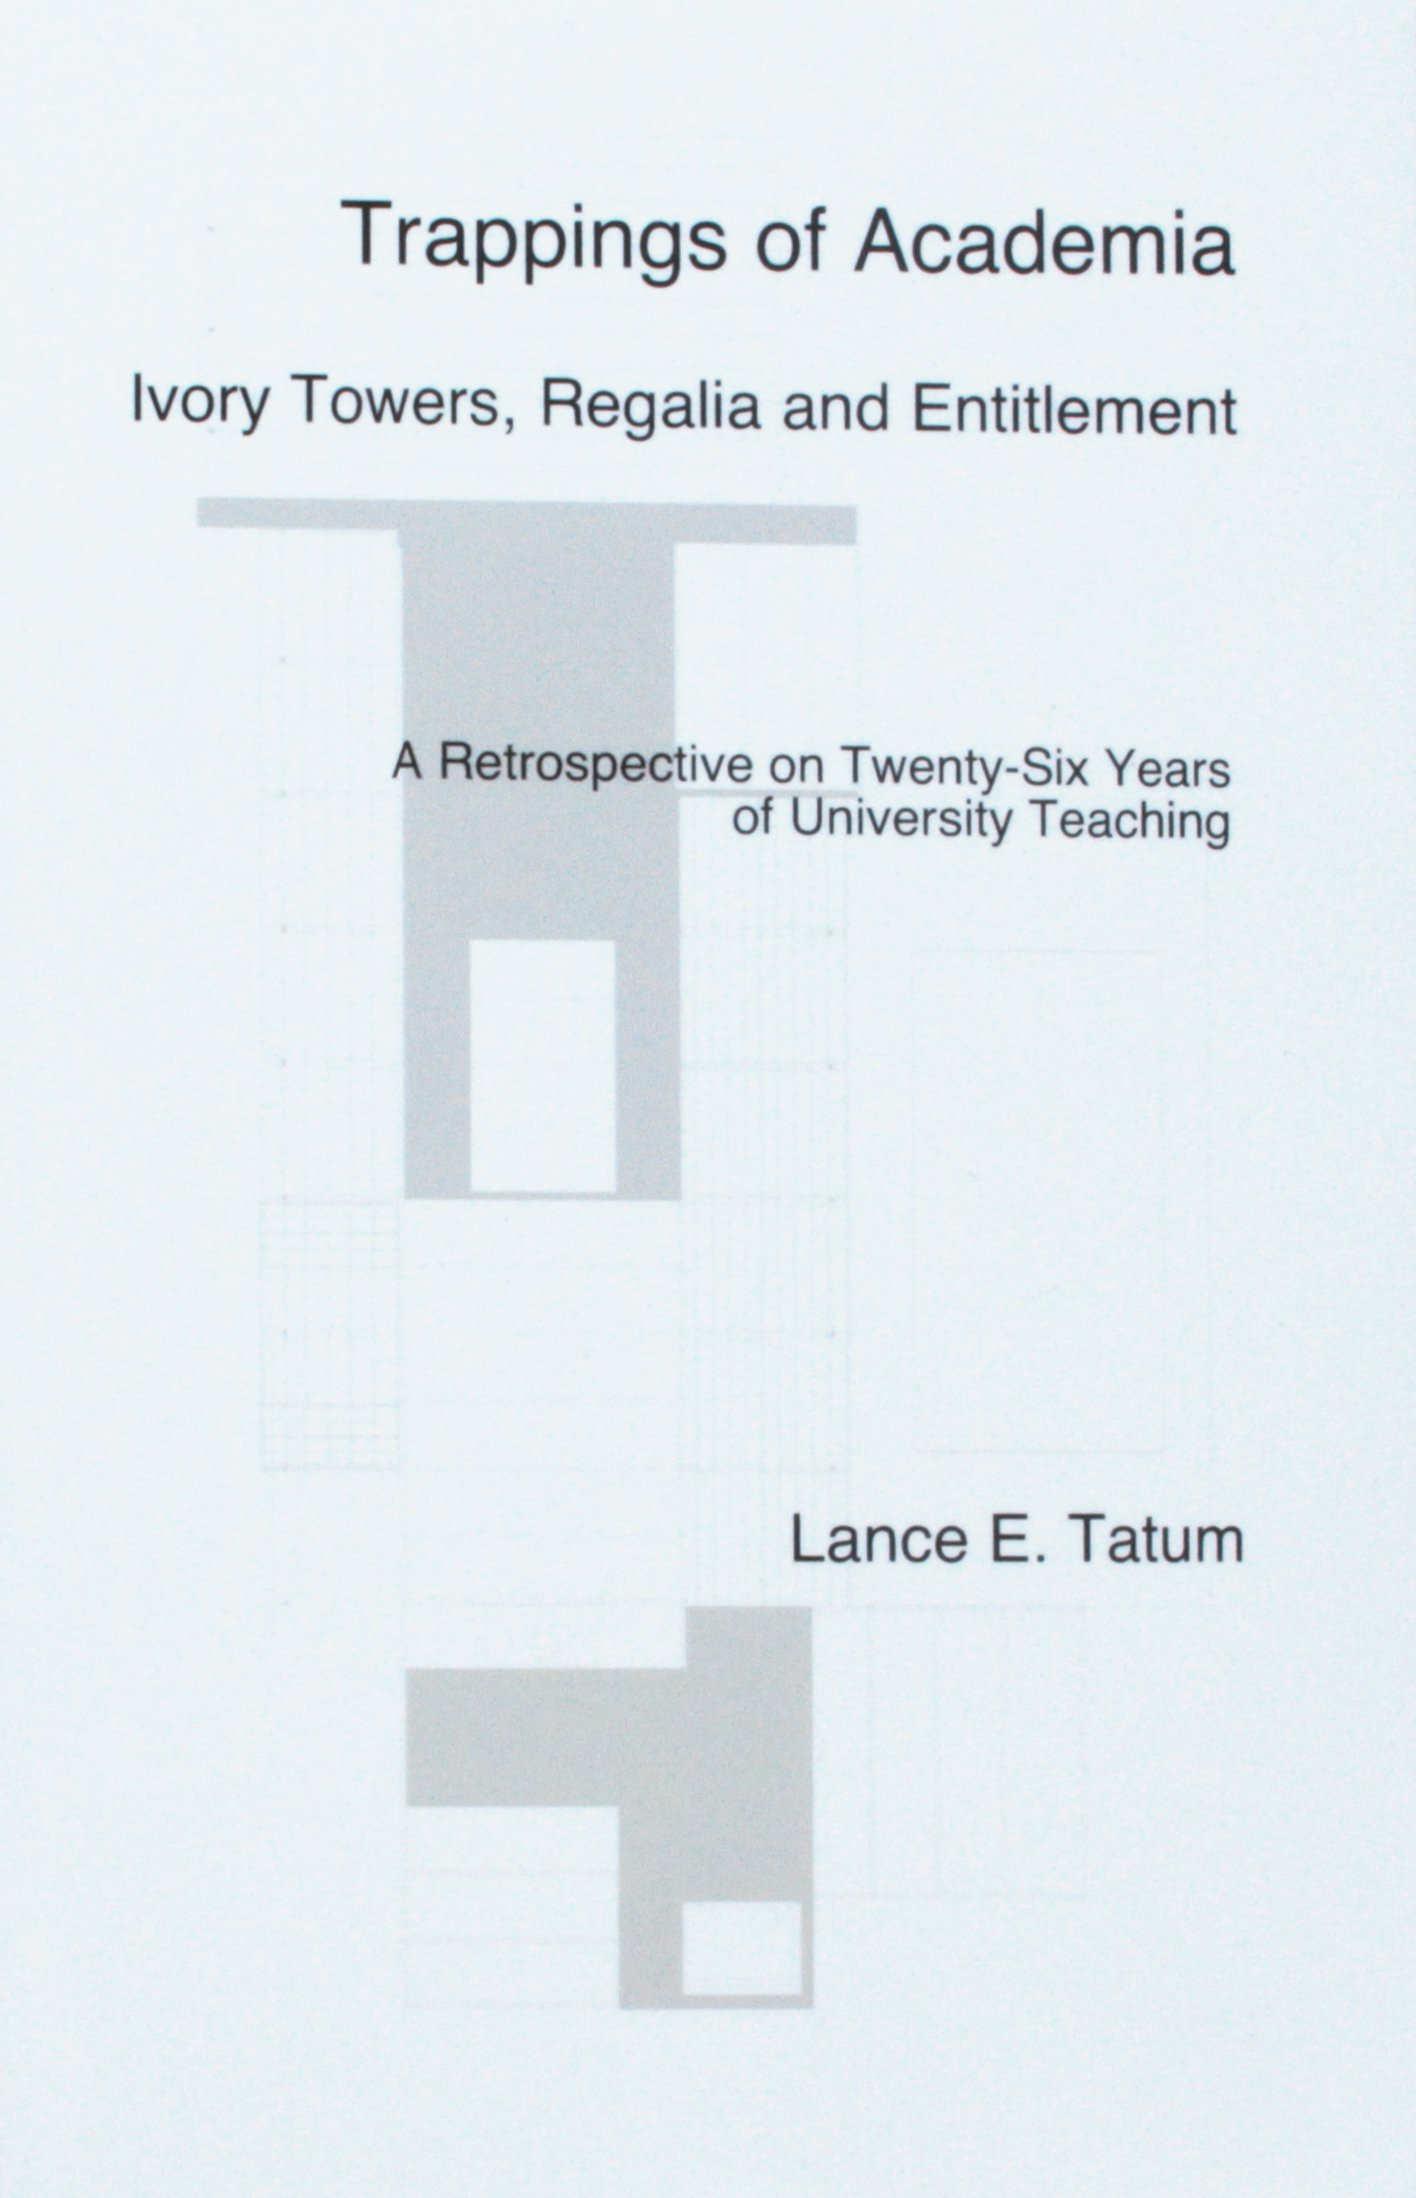 Trappings of Academia, Ivory Towers, Regalia and Entitlement: A Retrospective on Twenty-Six Years of University Teaching ebook